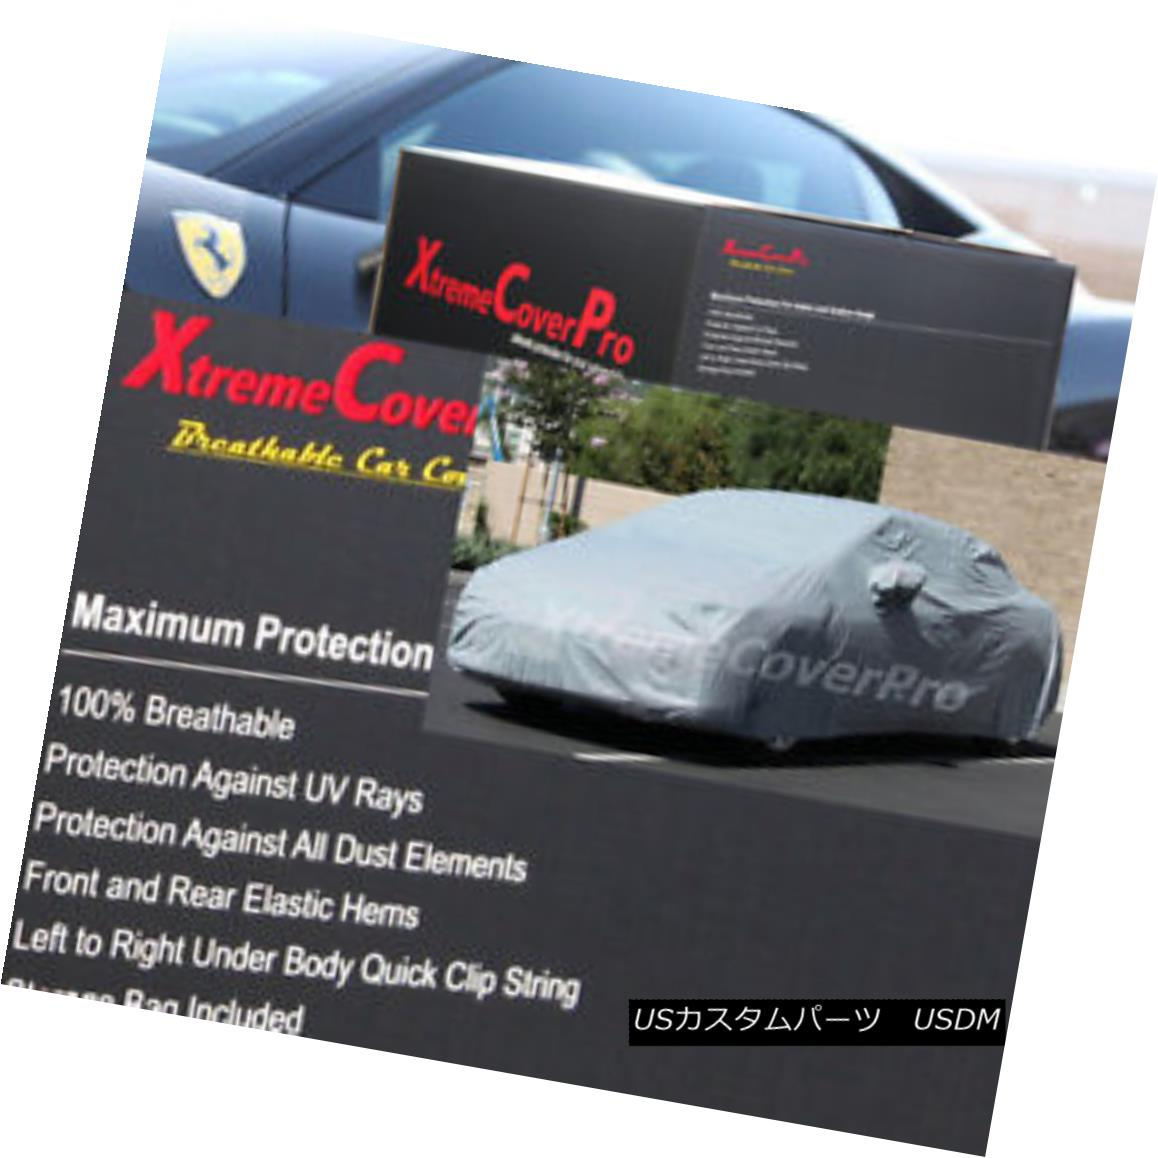 カーカバー 2015 LINCOLN MKS Breathable Car Cover w/Mirror Pockets - Gray 2015 LINCOLN MKS通気性の車カバー、ミラーポケット付き - グレー